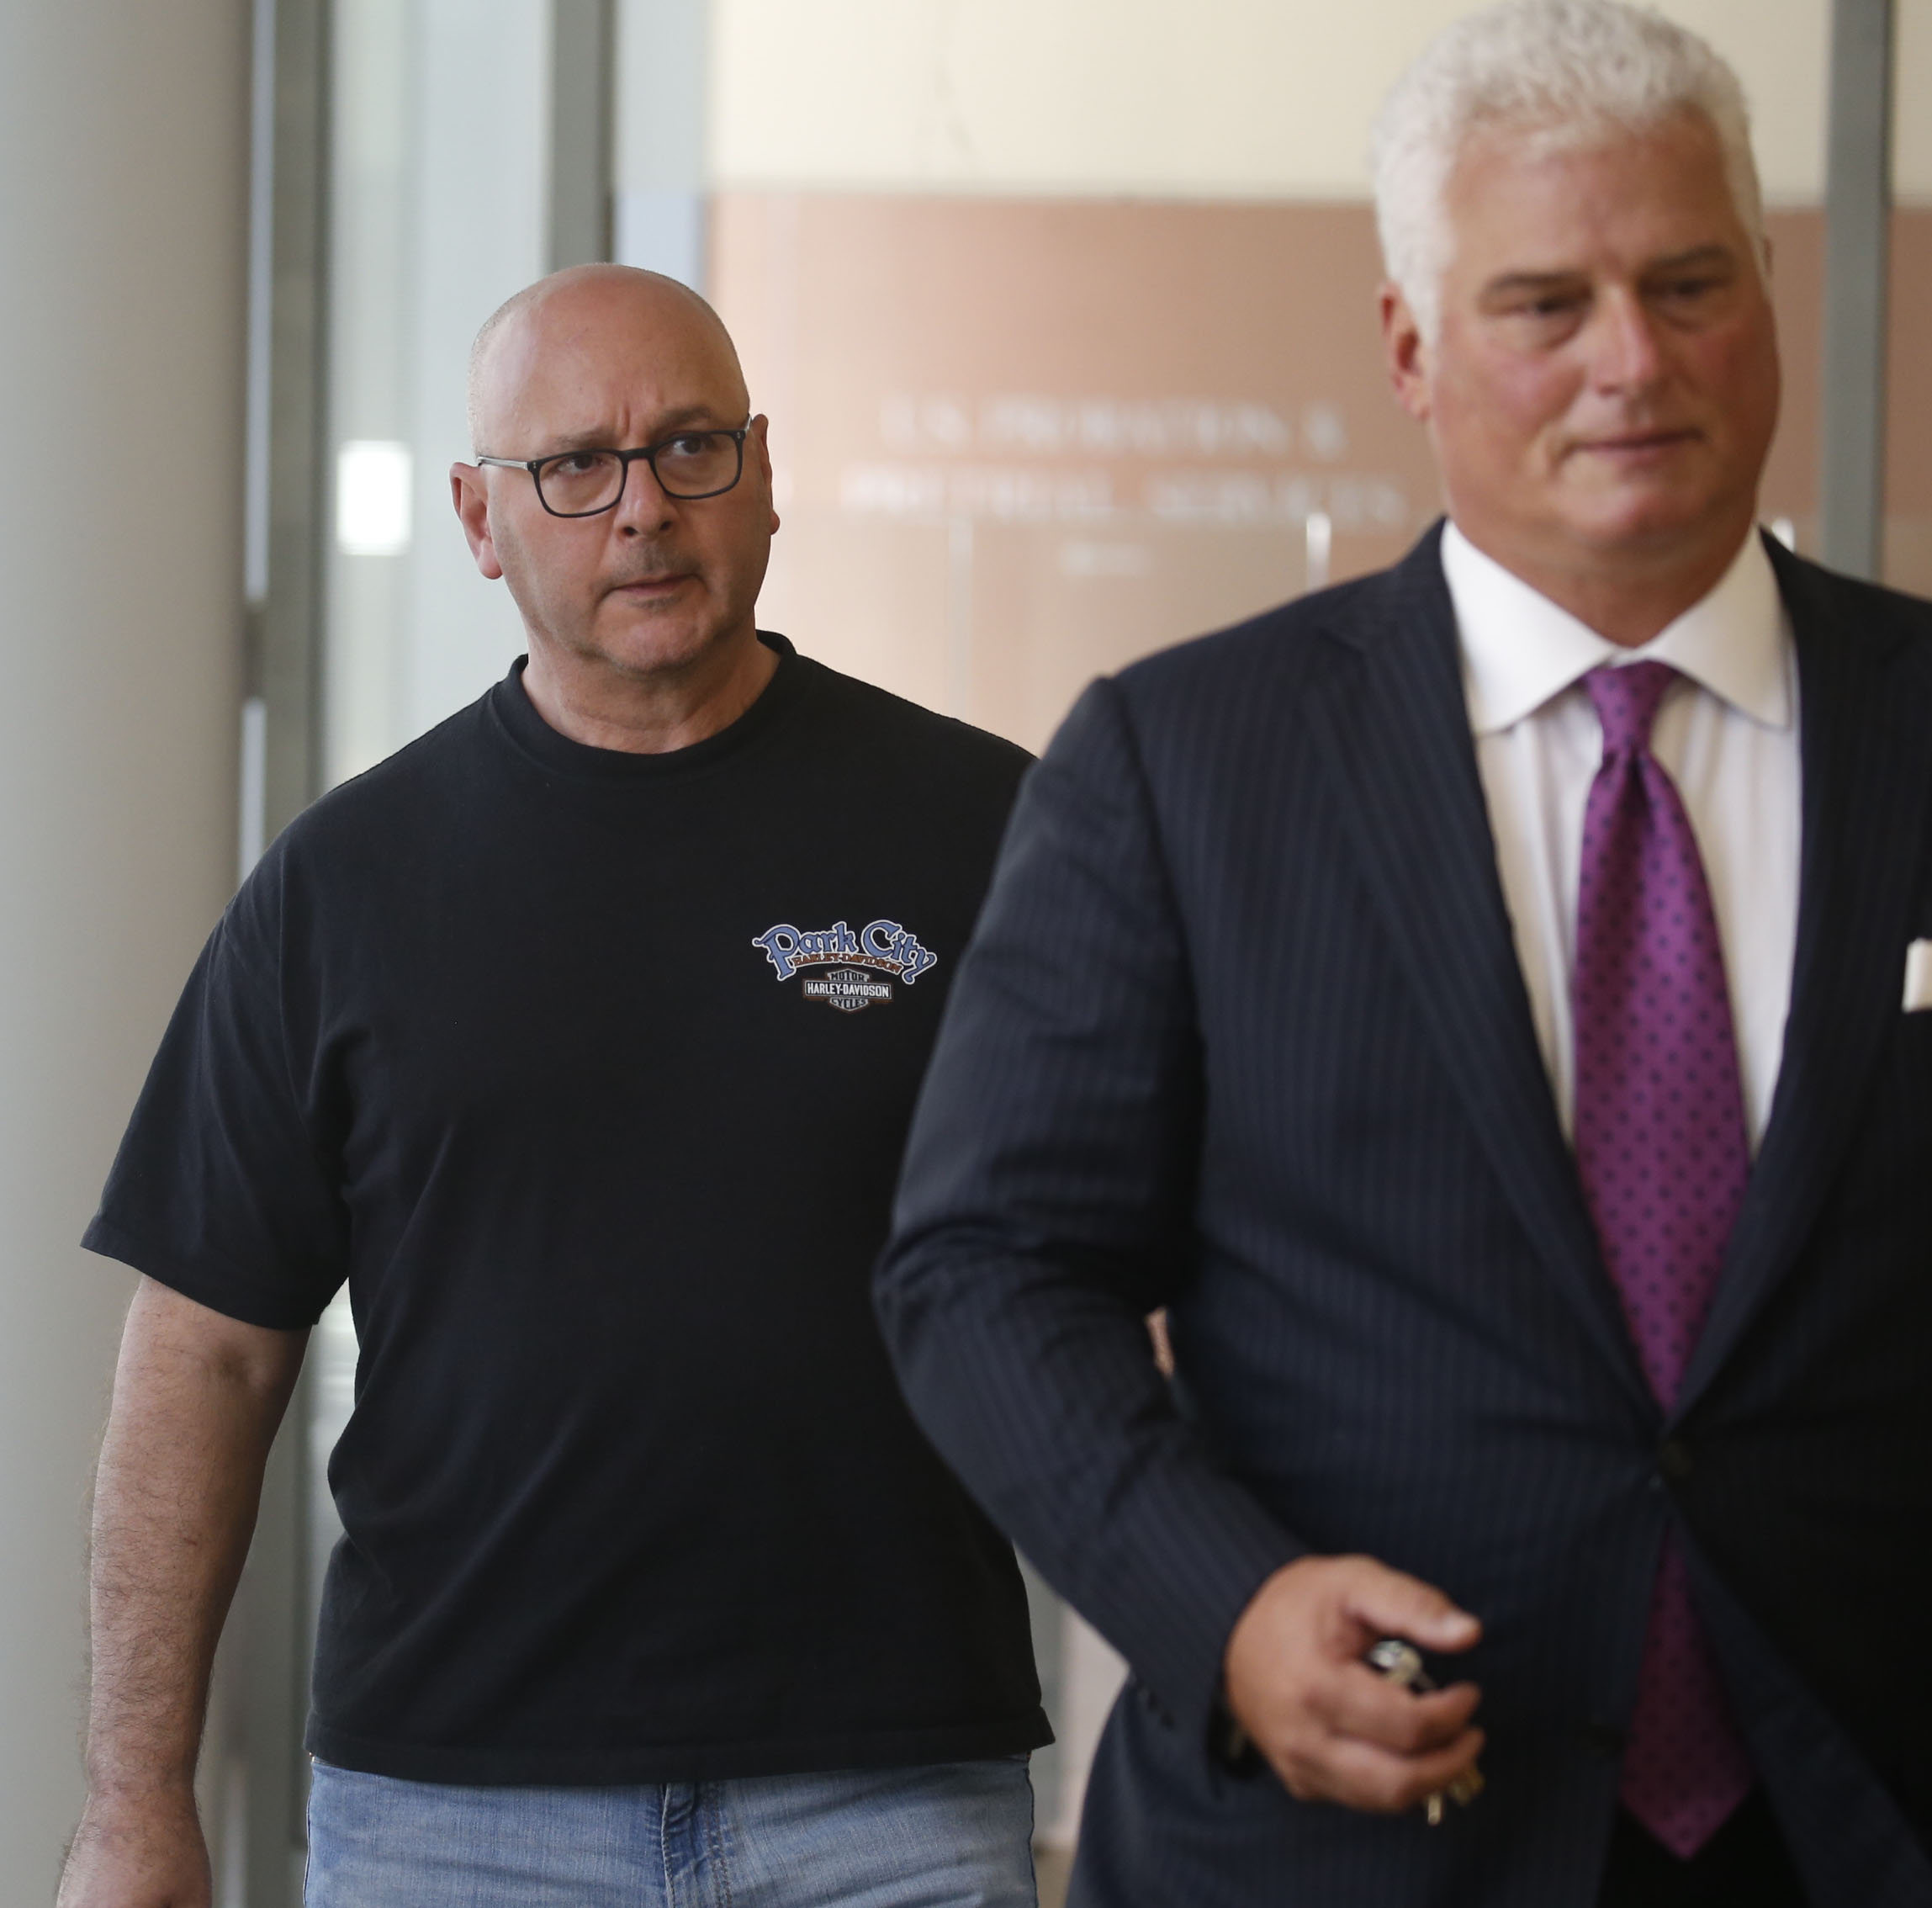 Louis P. Ciminelli, left, leaves federal court with his attorney Daniel C. Oliverio, right. (Robert Kirkham/Buffalo News file photo)